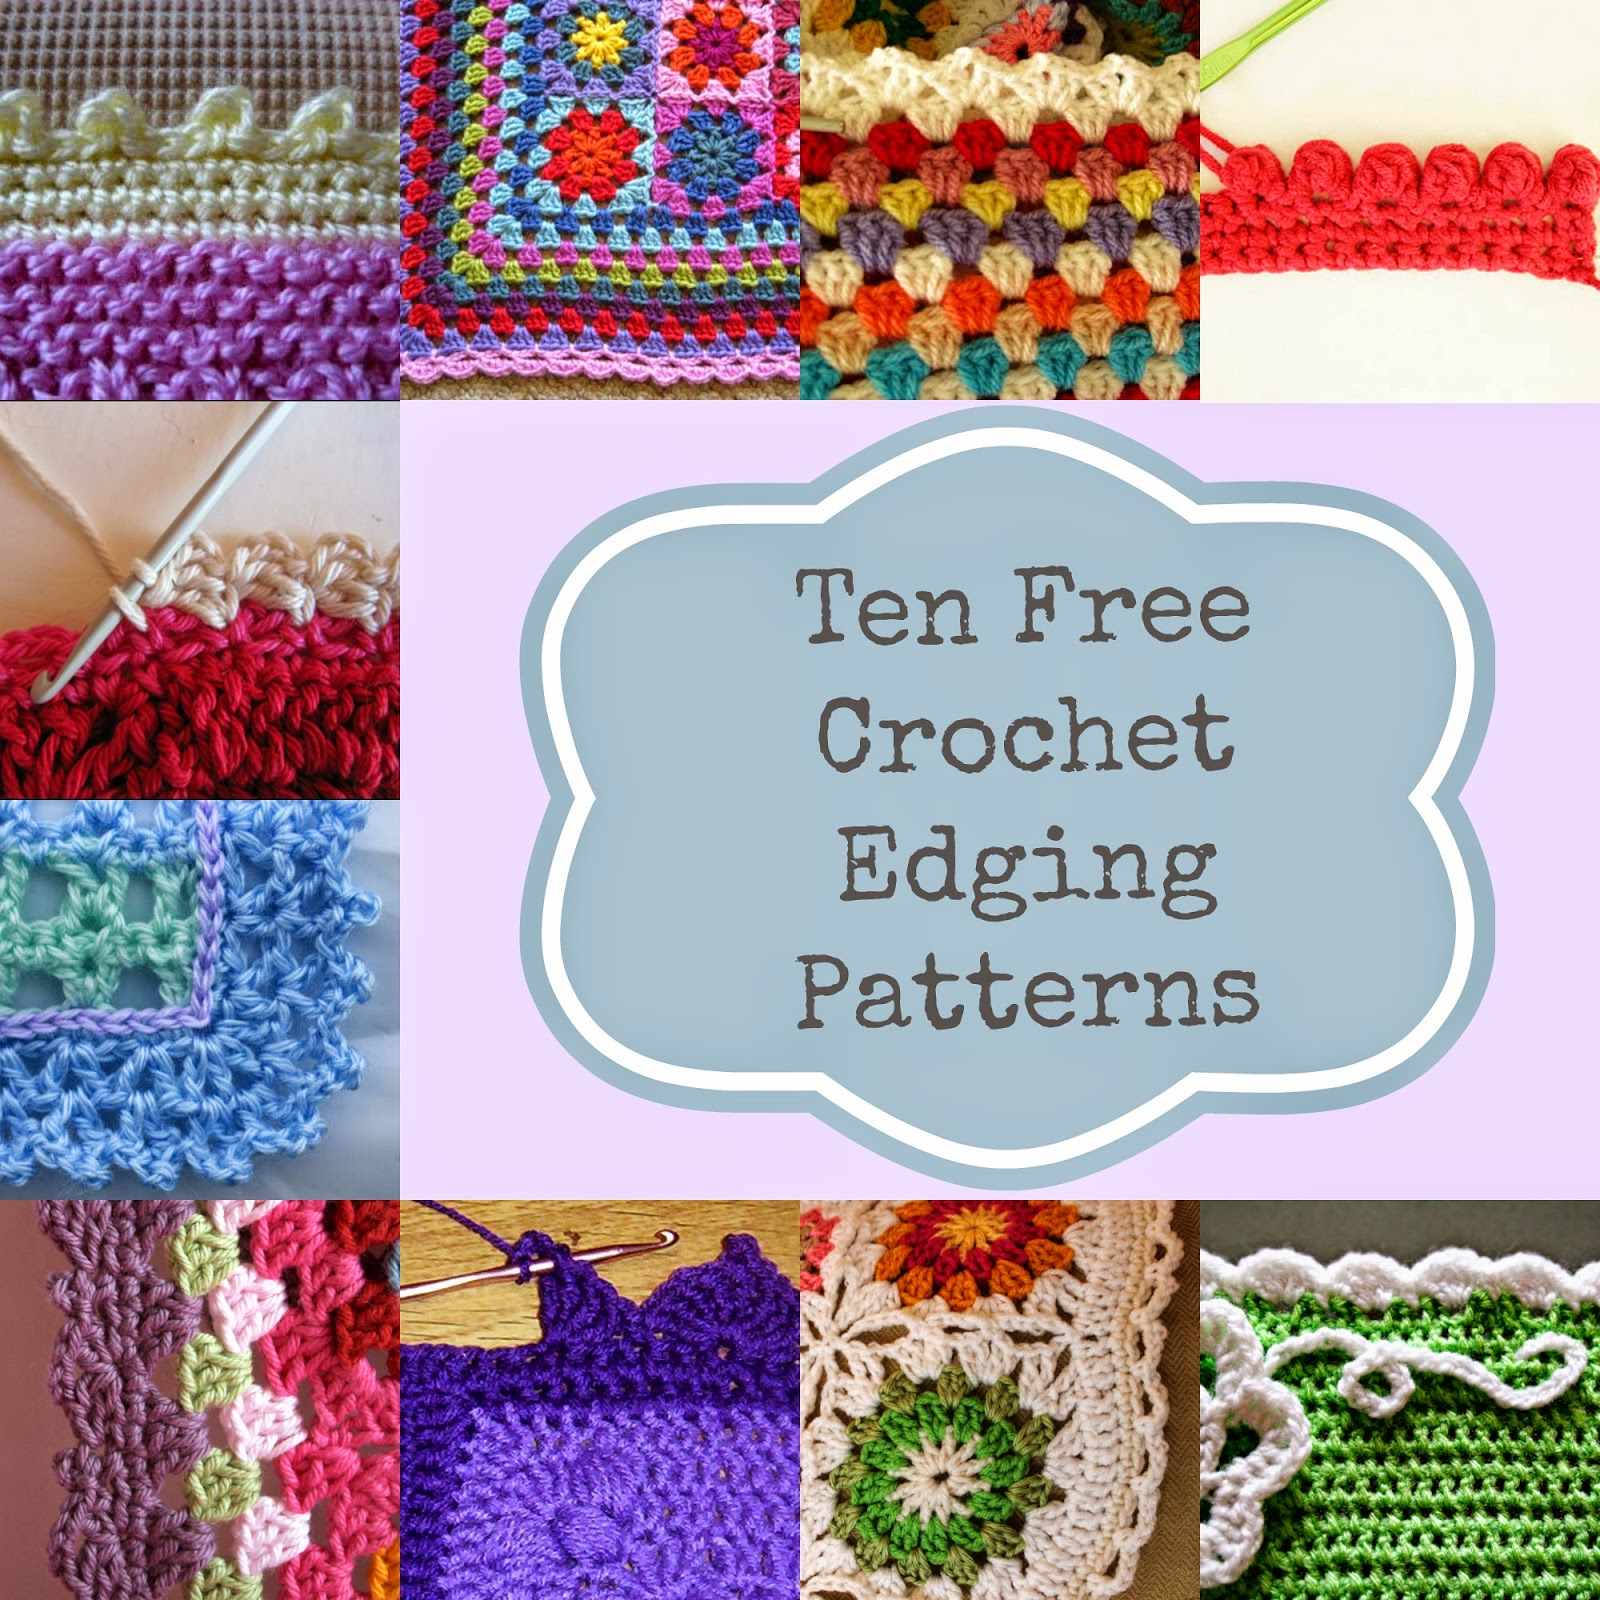 Crochet Patterns Edgings And Borders : ... Crochet: 10 Ways To Get The Perfect Finish On Your Crochet Afghan